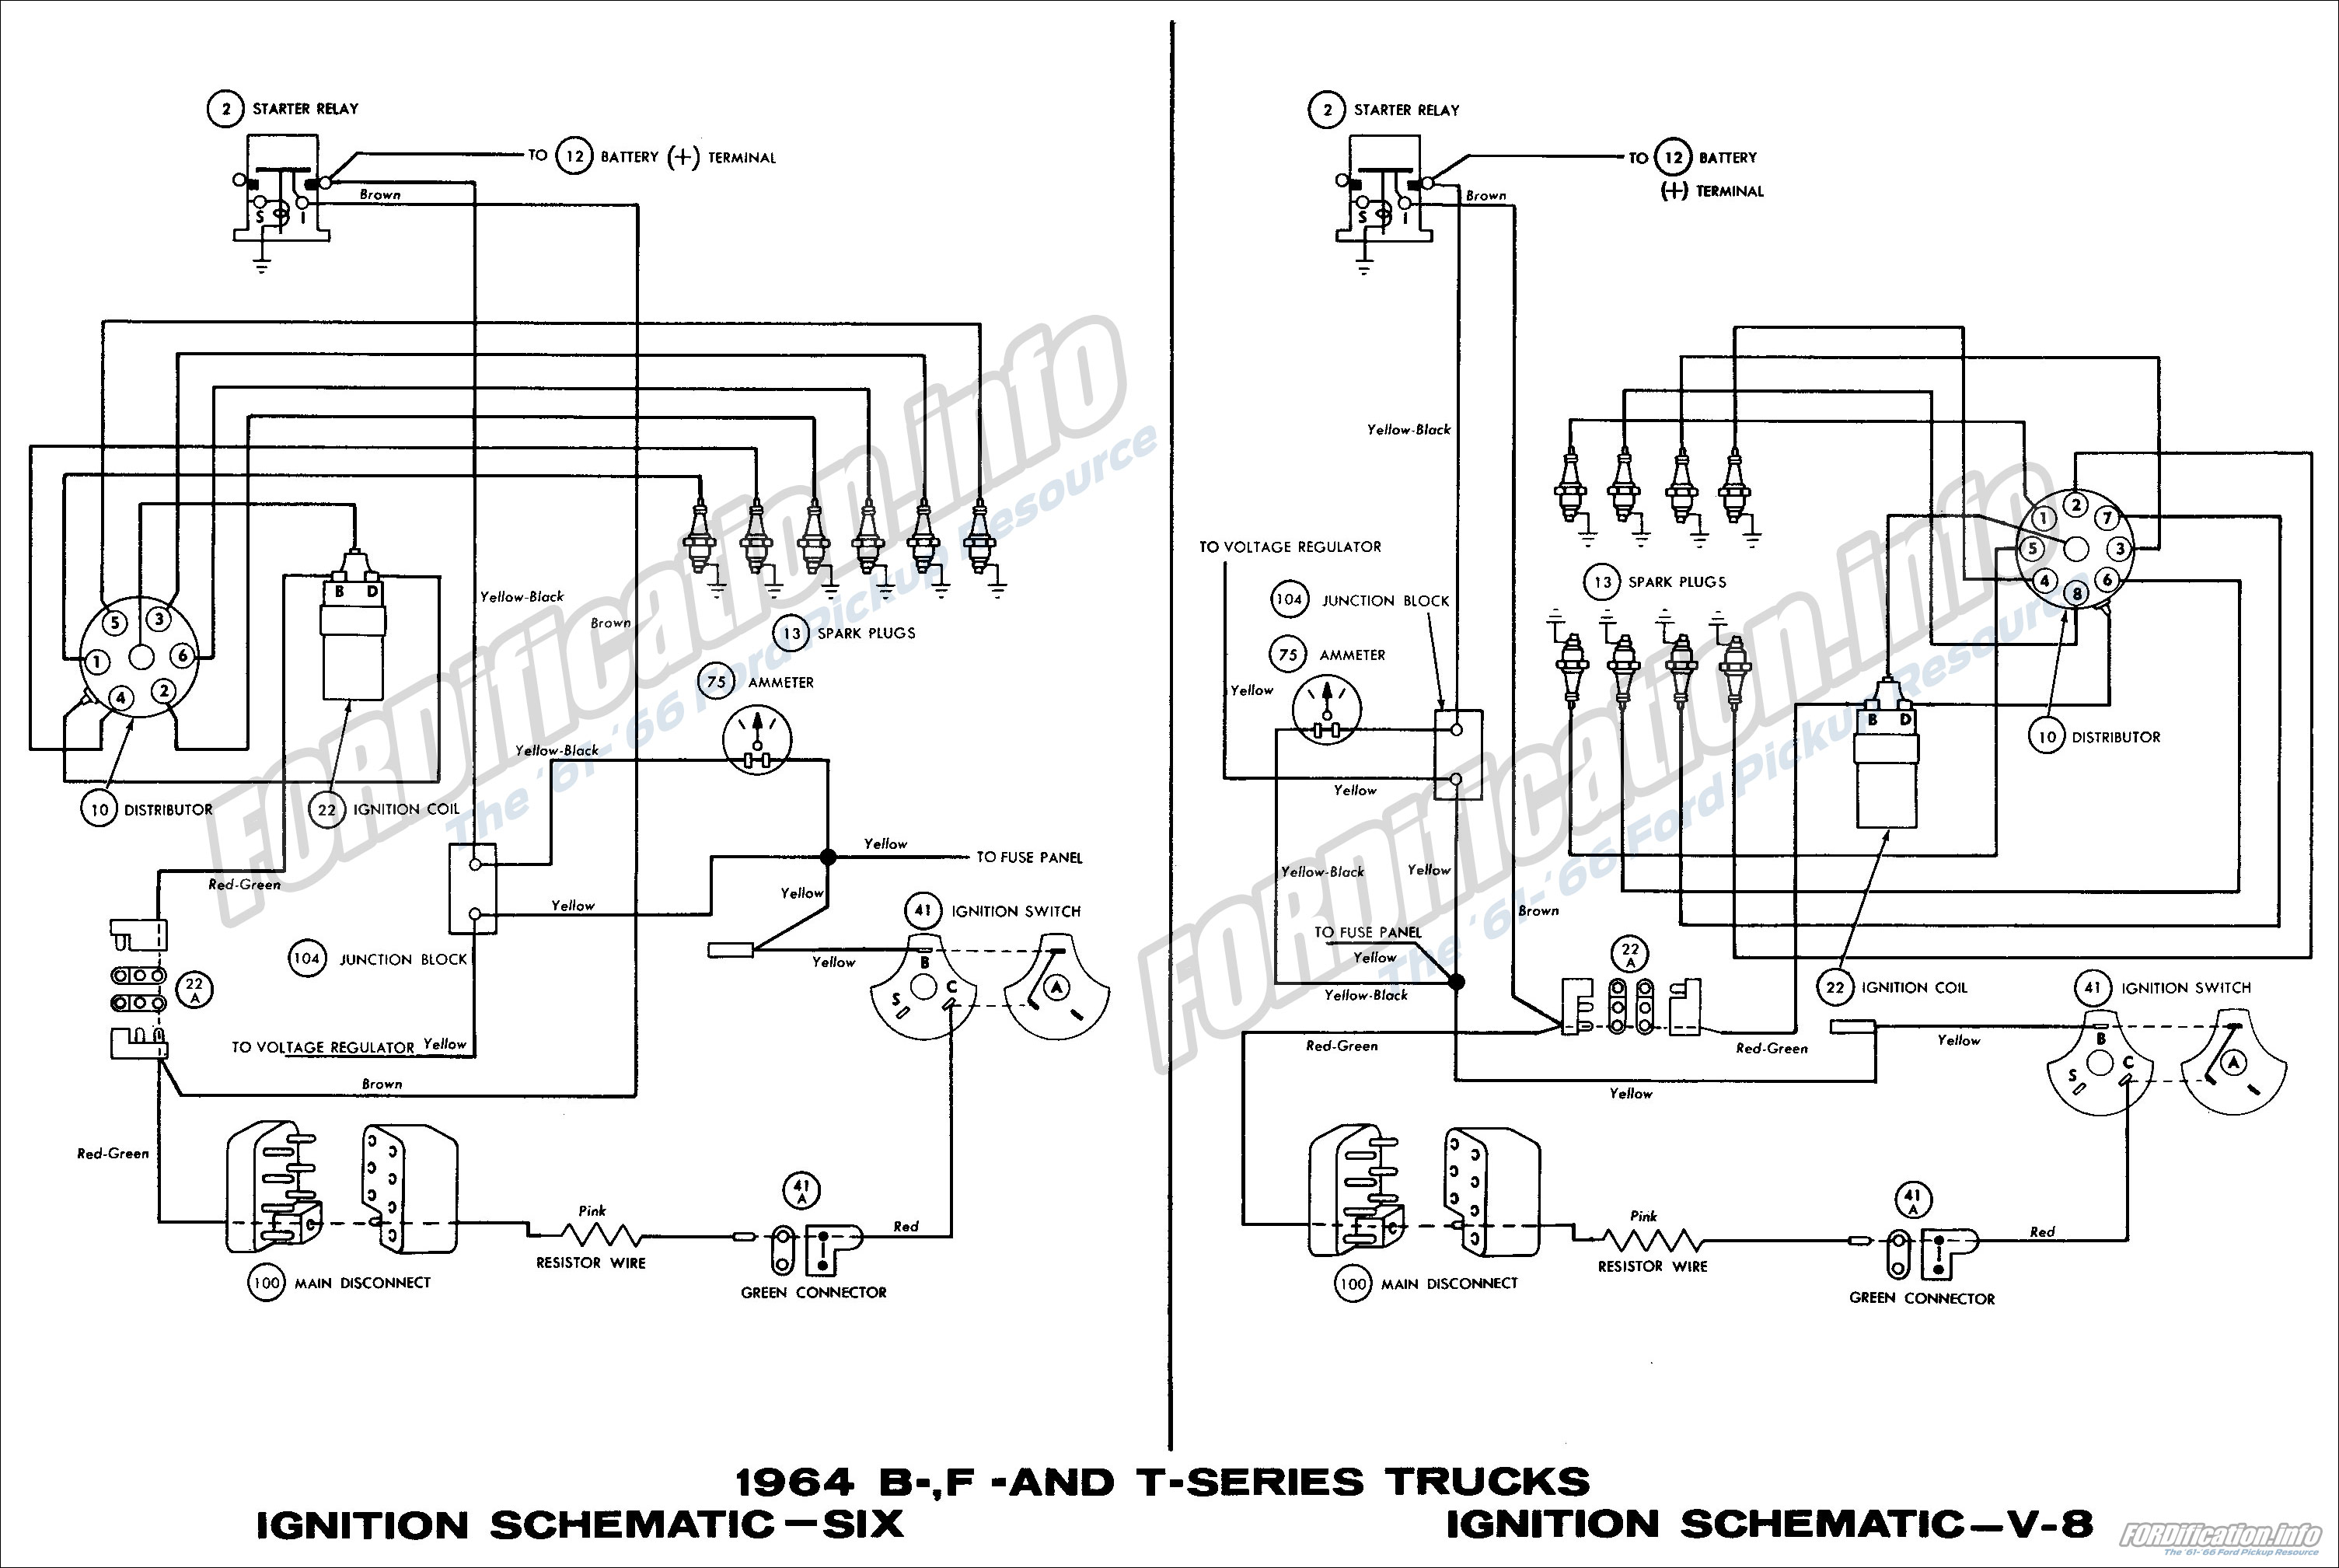 [DIAGRAM_3NM]  1964 Ford Truck Wiring Diagrams - FORDification.info - The '61-'66 Ford  Pickup Resource | 1966 Ford F100 Engine Wiring Diagram Free Picture |  | FORDification.info